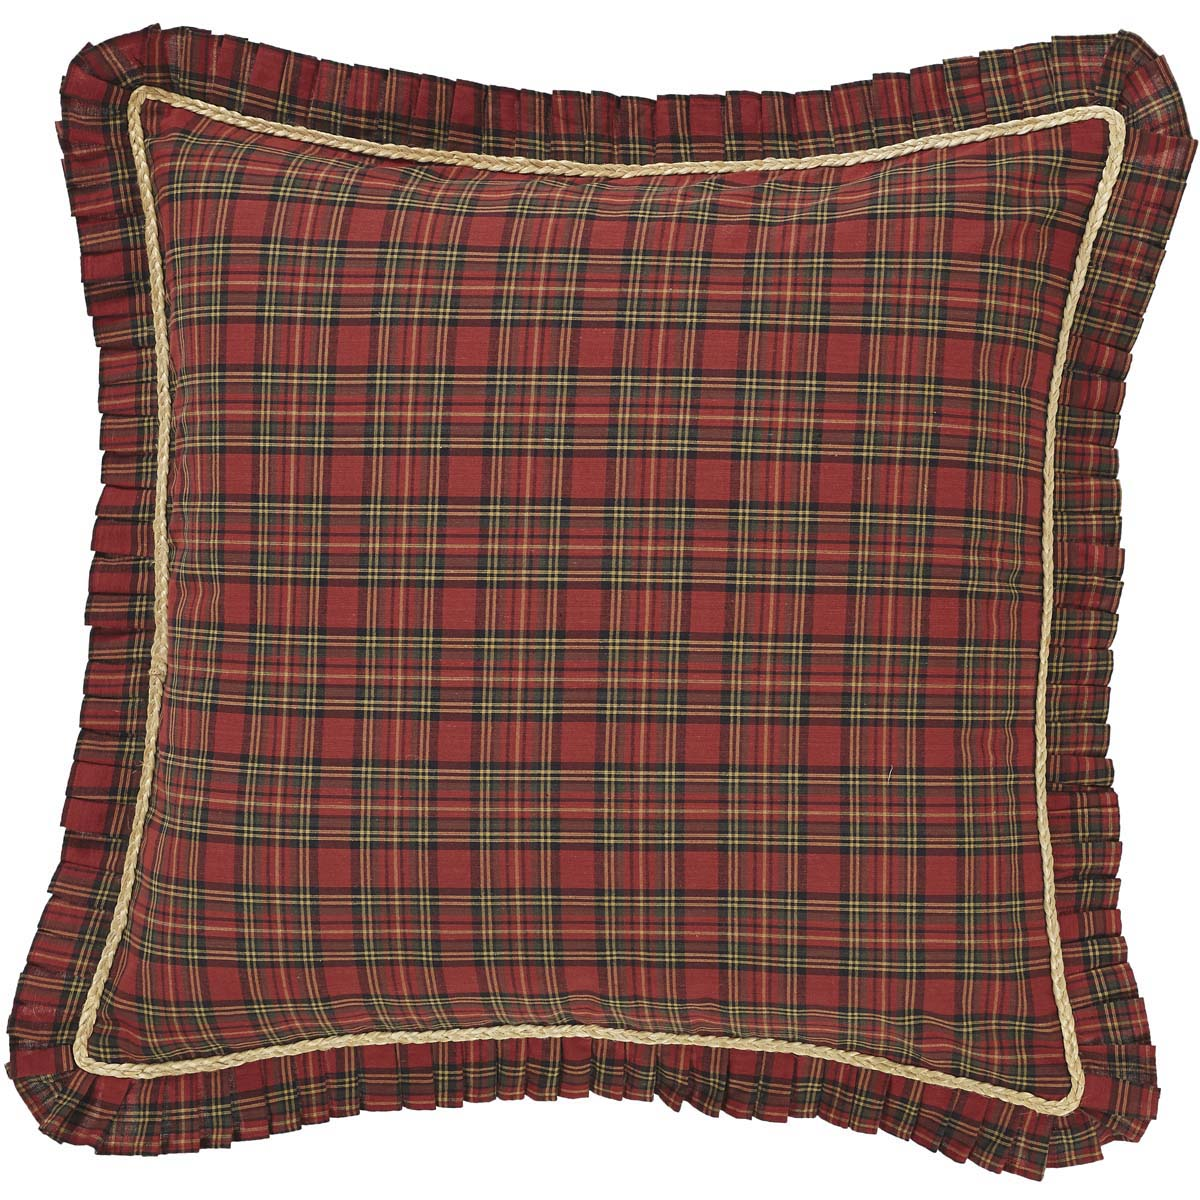 Brick Red Primitive Bedding Kilton Star Cotton Rope Plaid Euro Sham